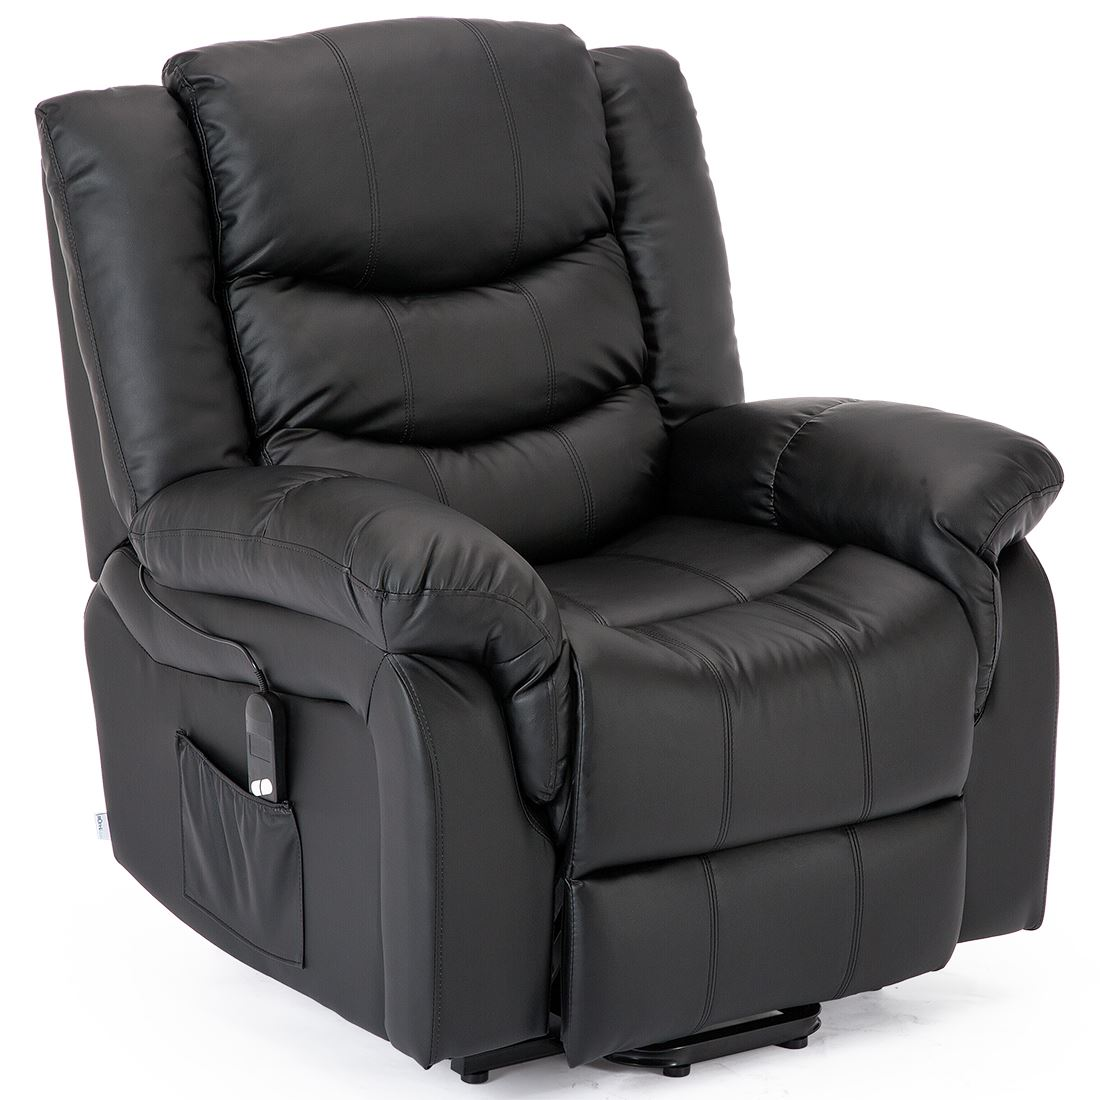 SEATTLE-ELECTRIC-RISE-REAL-LEATHER-RECLINER-ARMCHAIR-SOFA-HOME-LOUNGE-CHAIR thumbnail 5